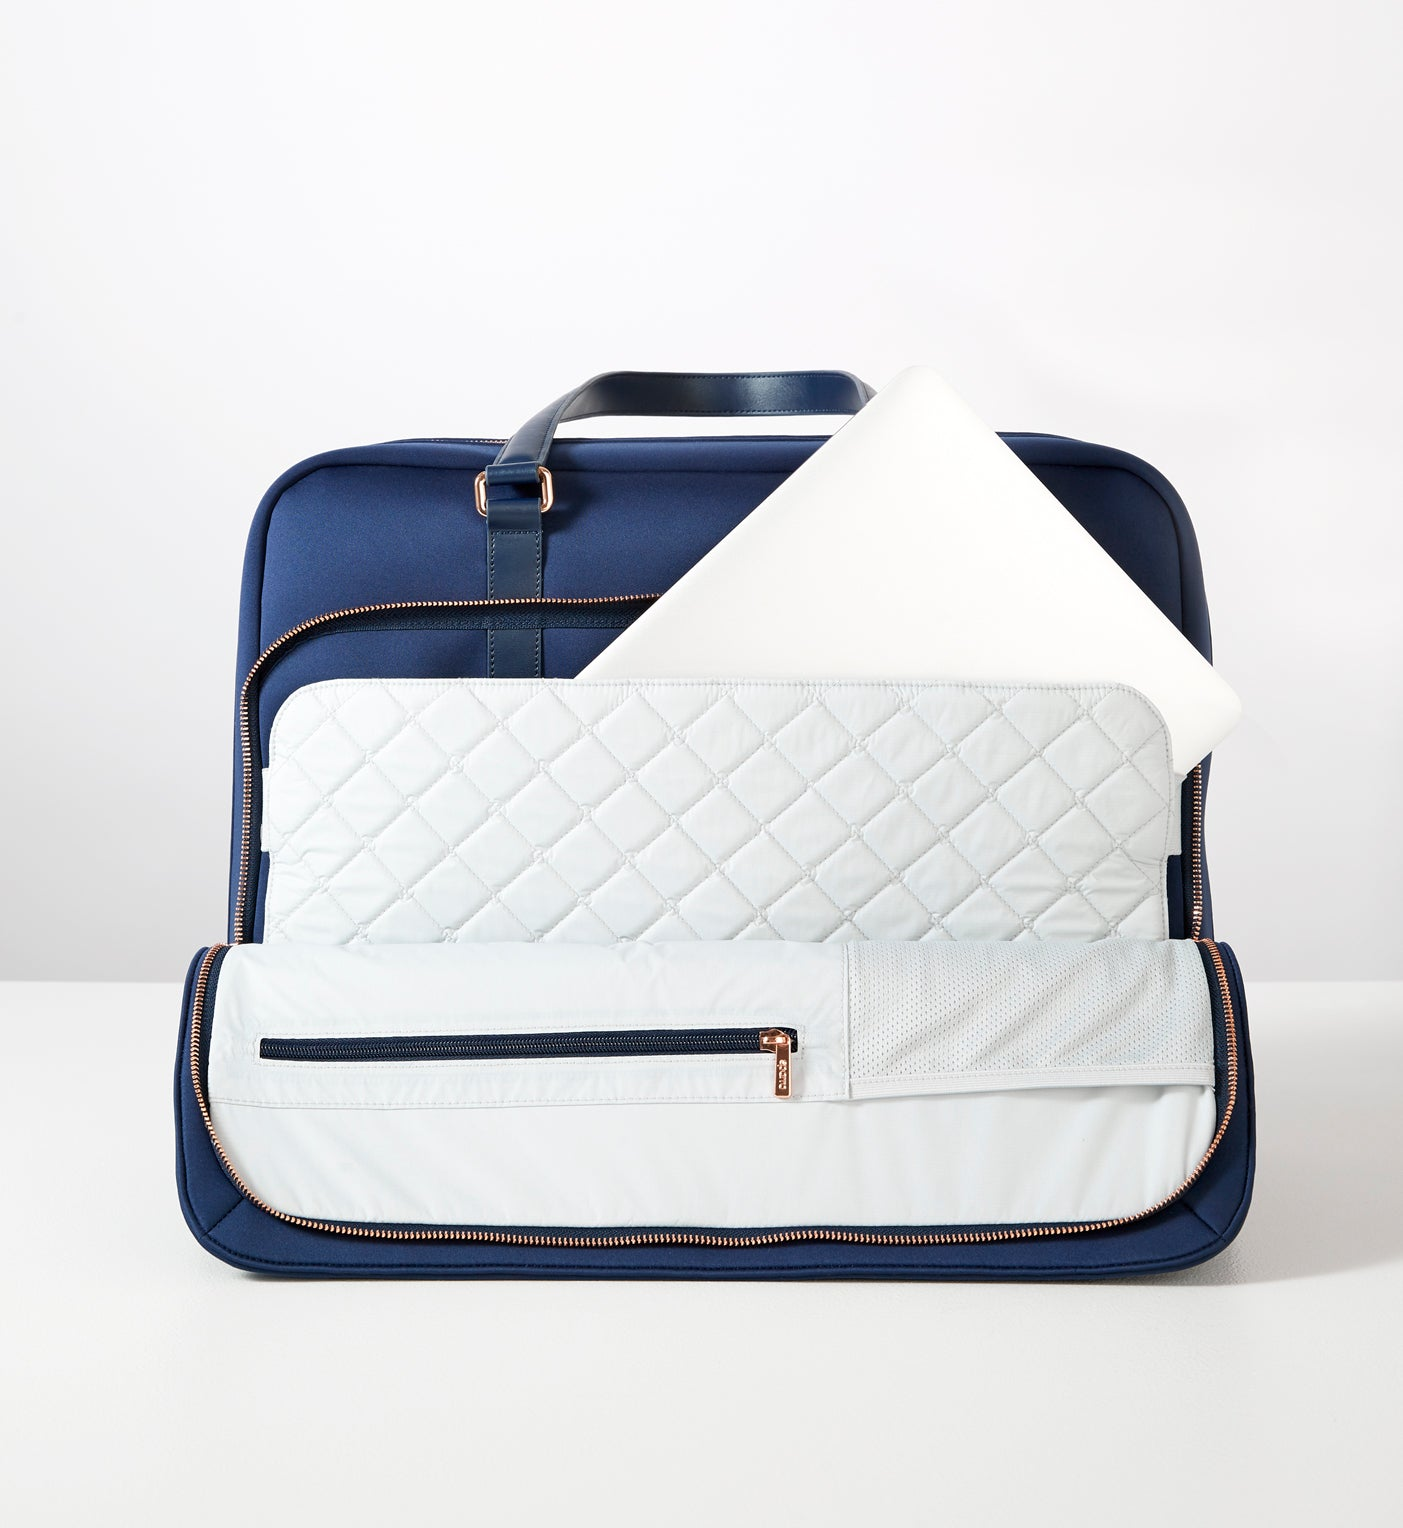 Sparro Designs Carry-All with laptop compartment